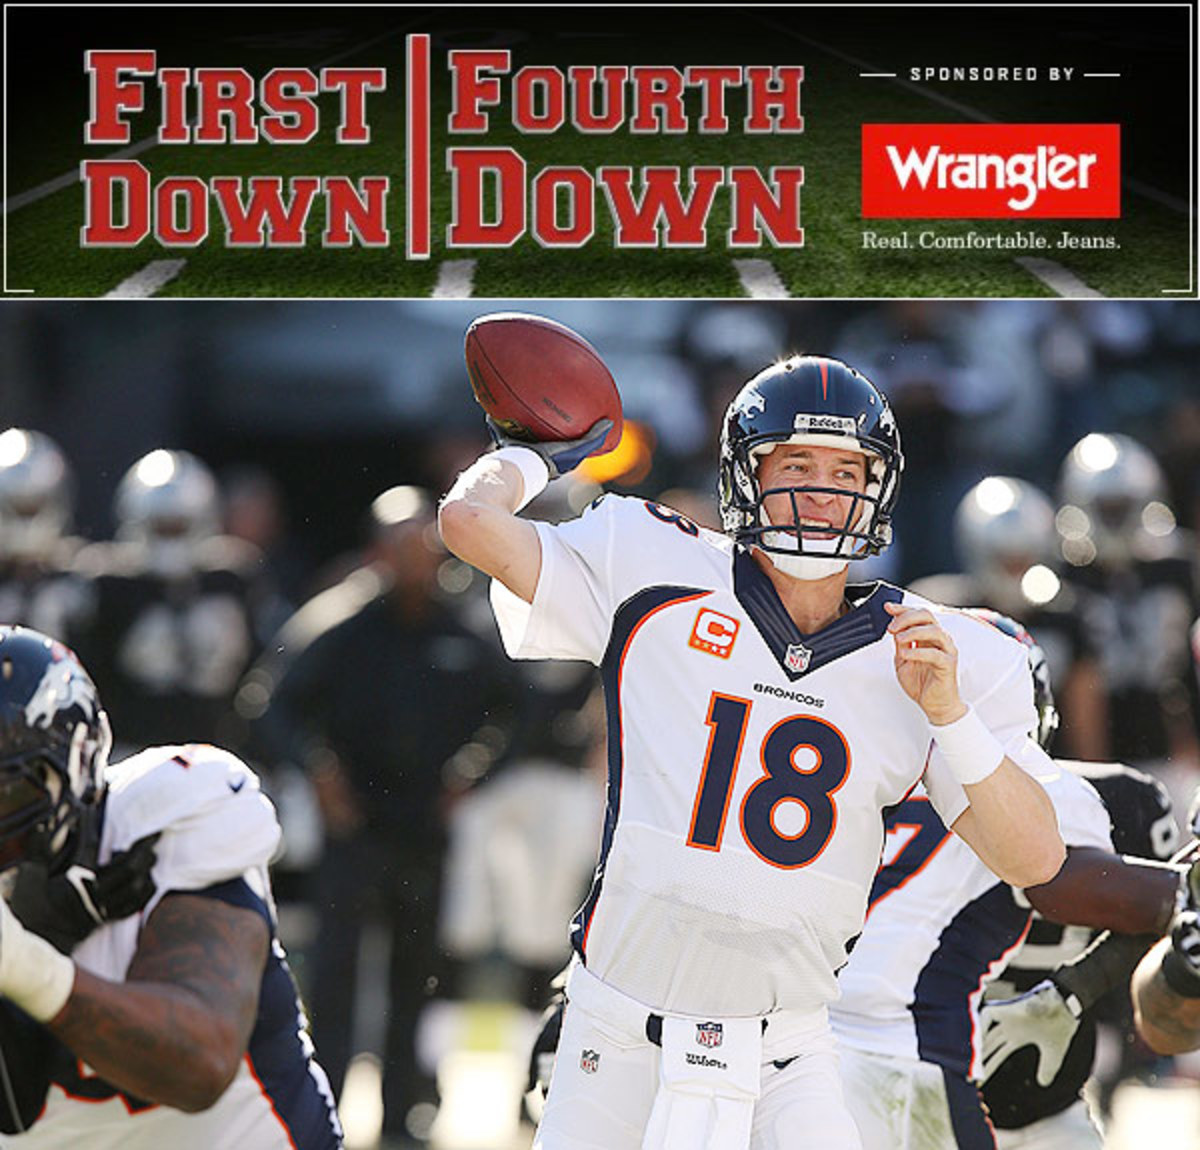 Peyton Manning and the Broncos enter the playoffs as the No. 1 seed in the AFC.